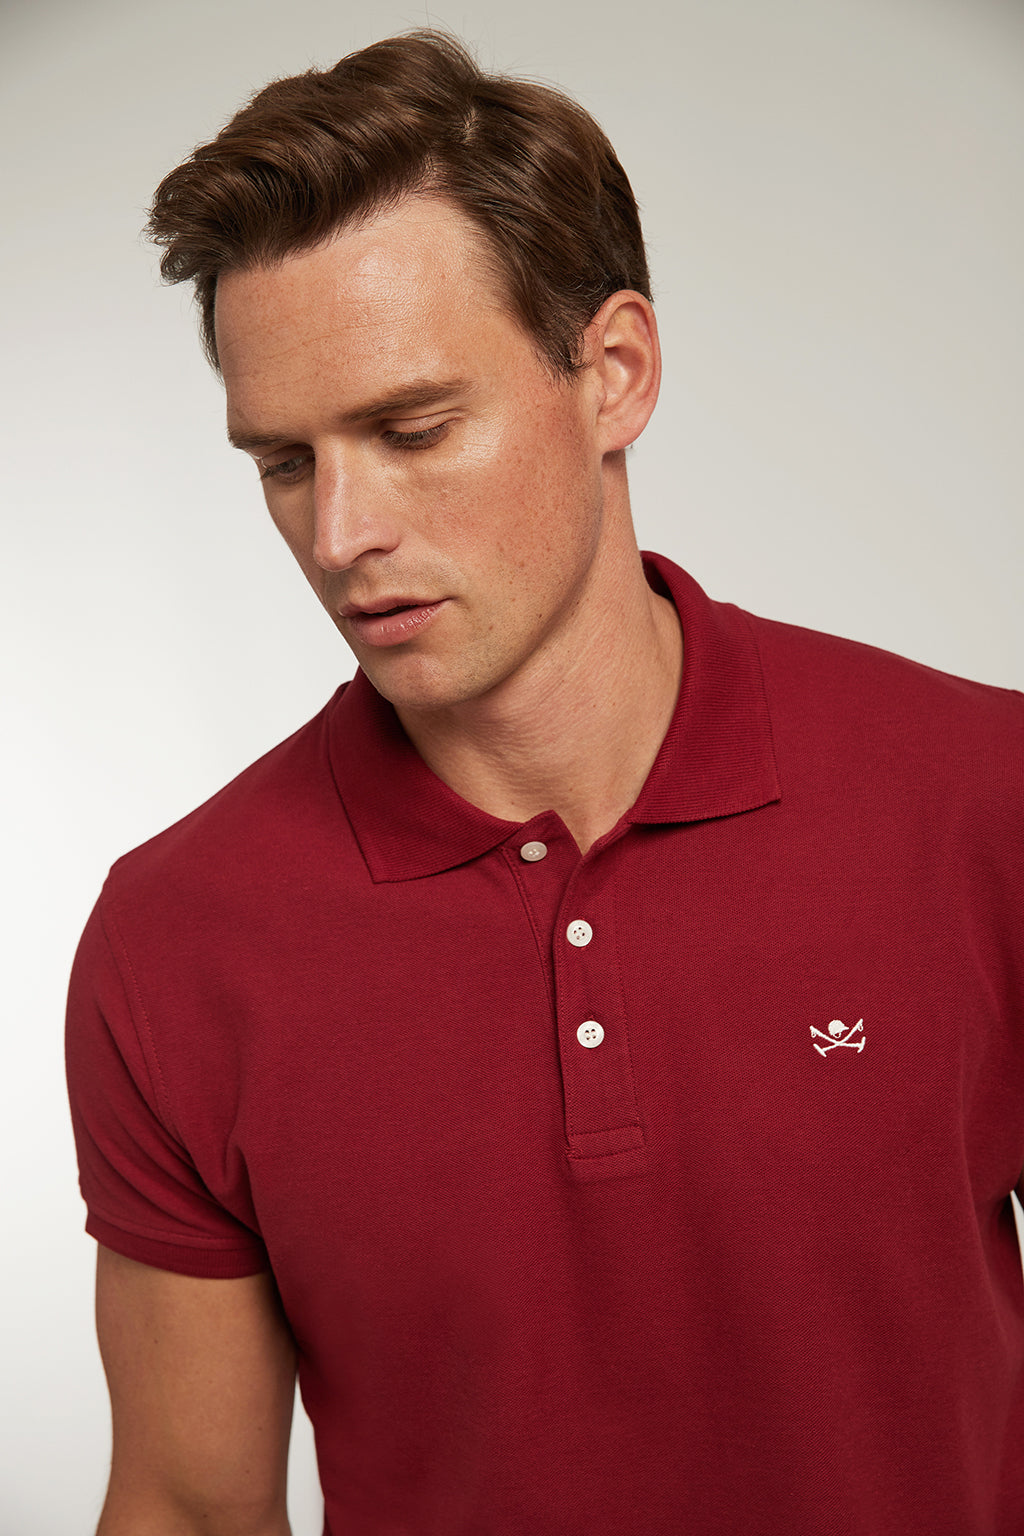 Polo custom fit granate con logo